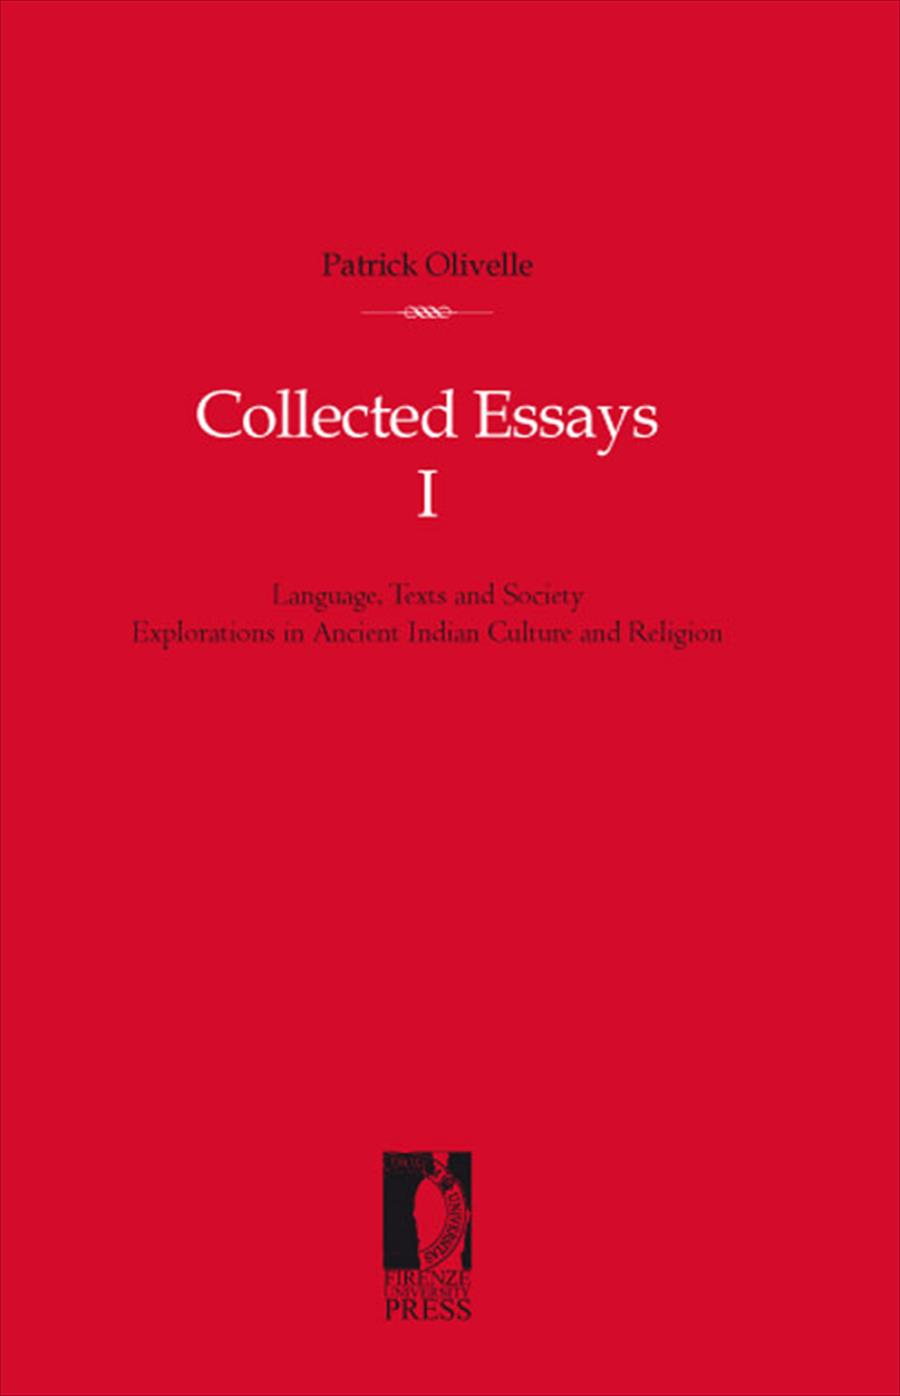 Collected Essays 1